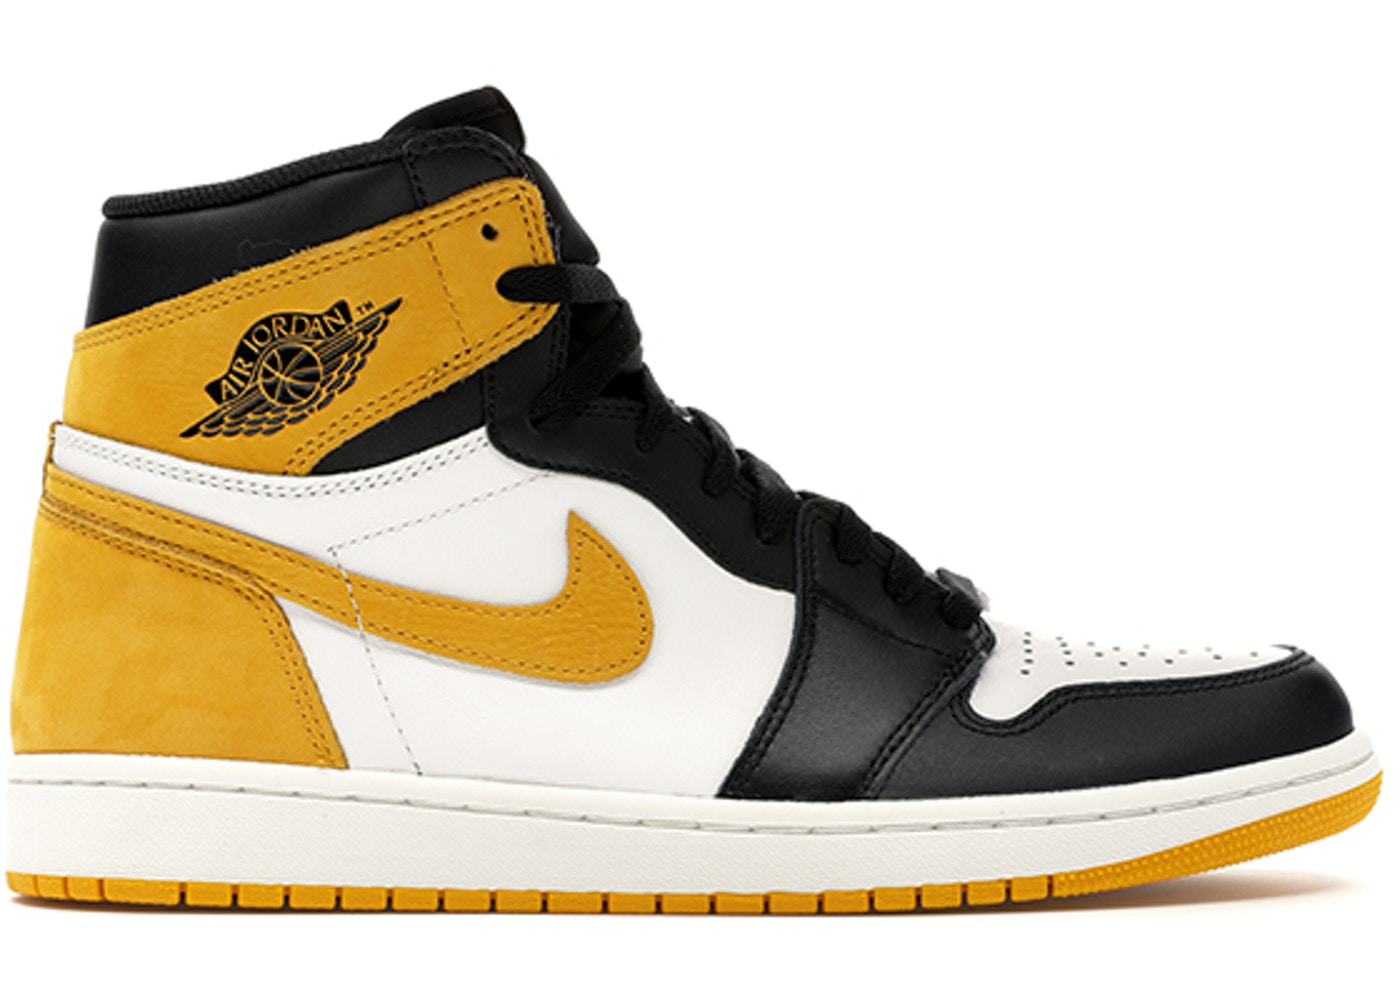 f906584df35 Jordan 1 Retro High Yellow Ochre - 555088-109